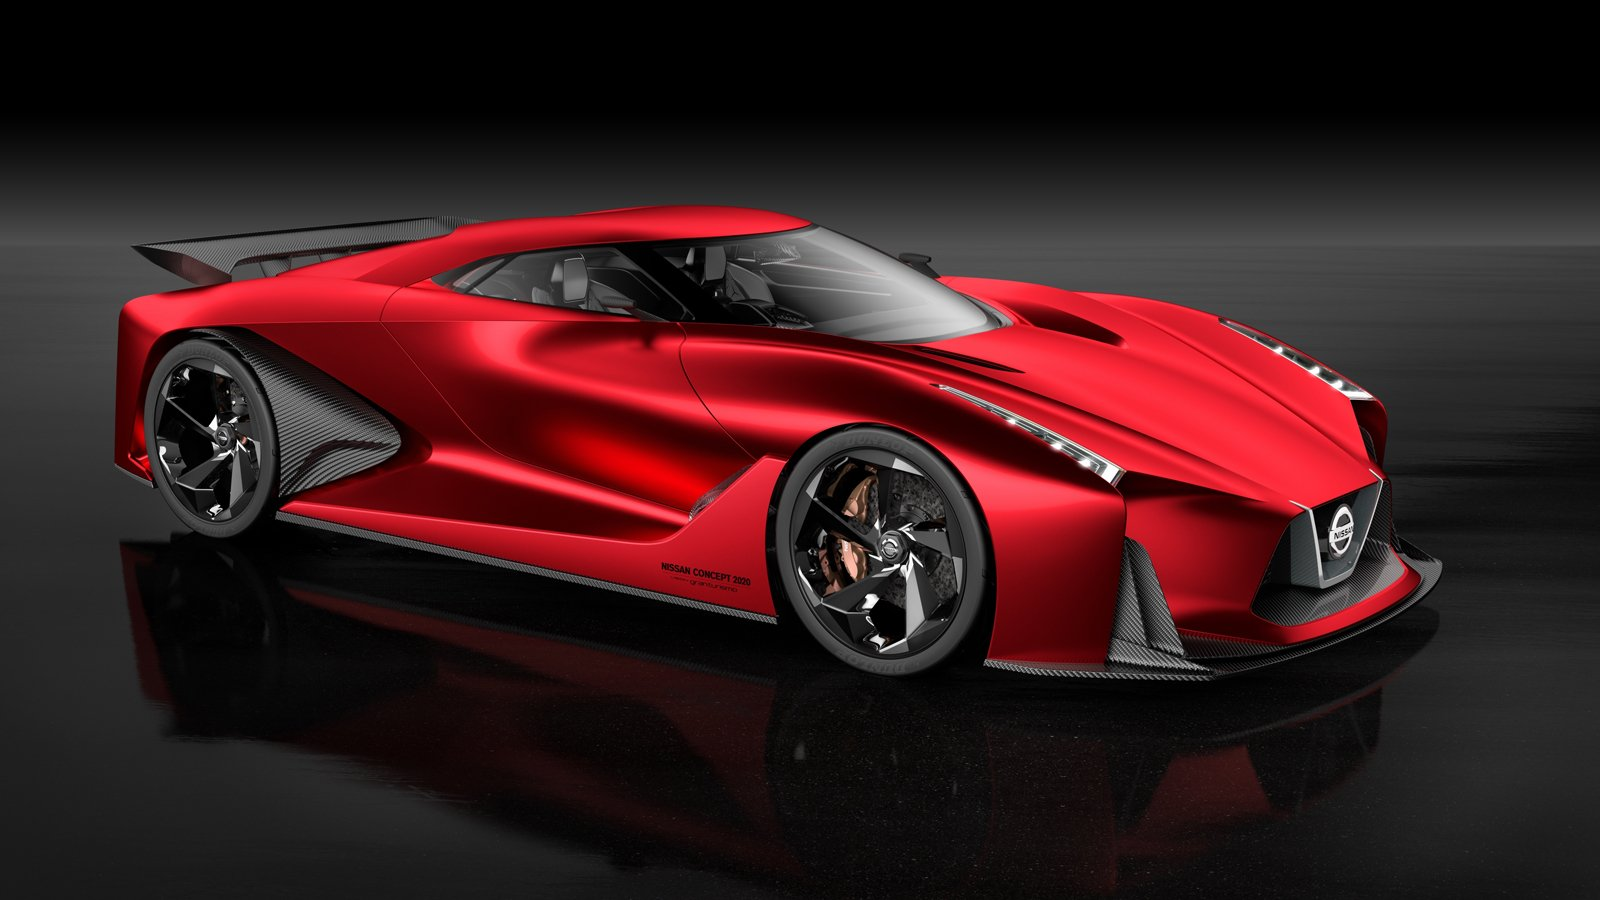 Lancer Gt 2018 >> Nissan Concept 2020 Vision Gran Turismo Looks Better in Red